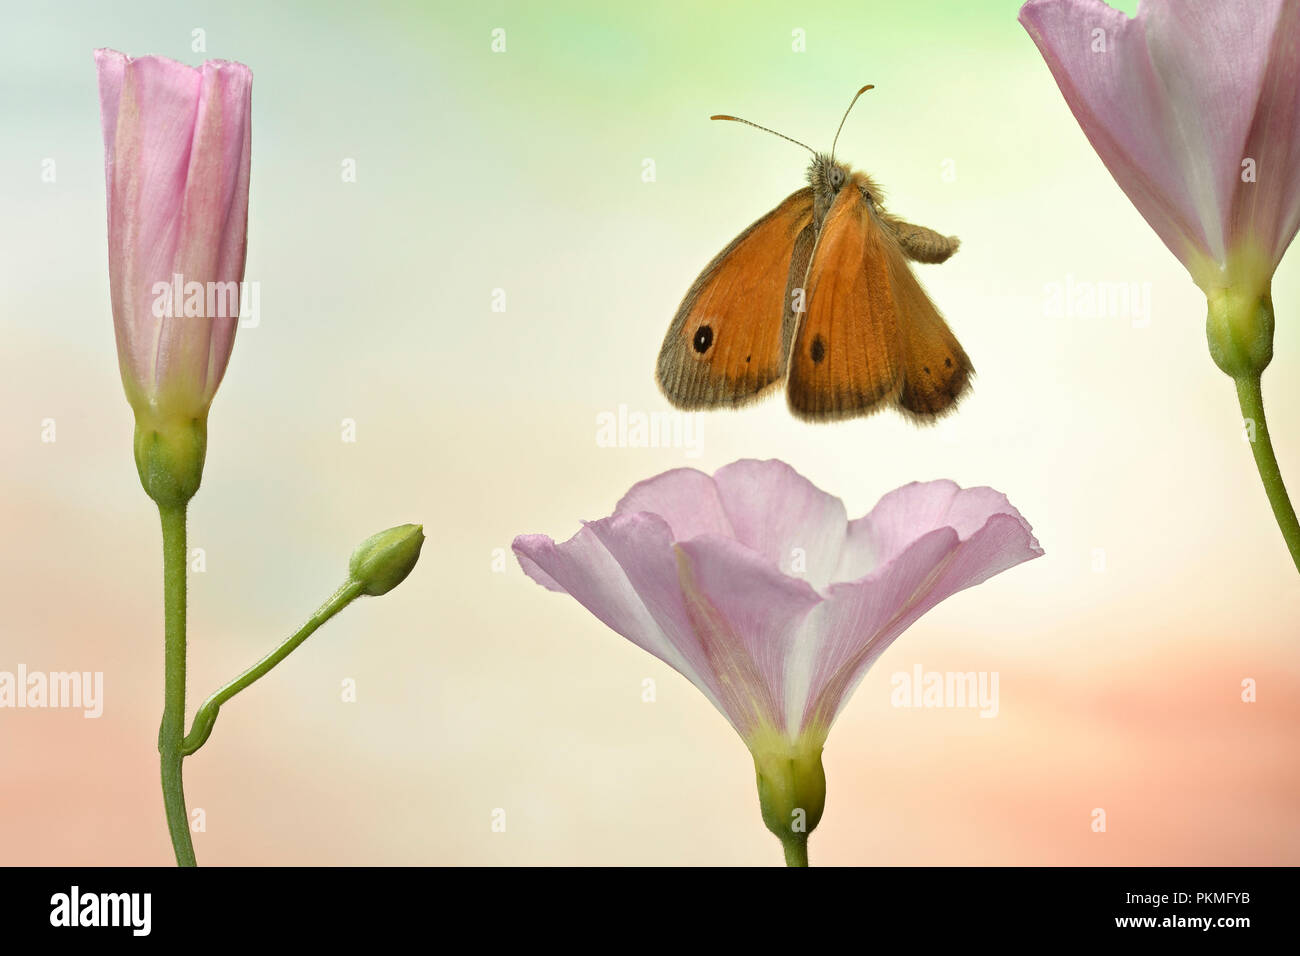 Small heath (Coenonympha pamphilus), in flight, at Field bindweed (Convolvulus arvensis), Germany - Stock Image